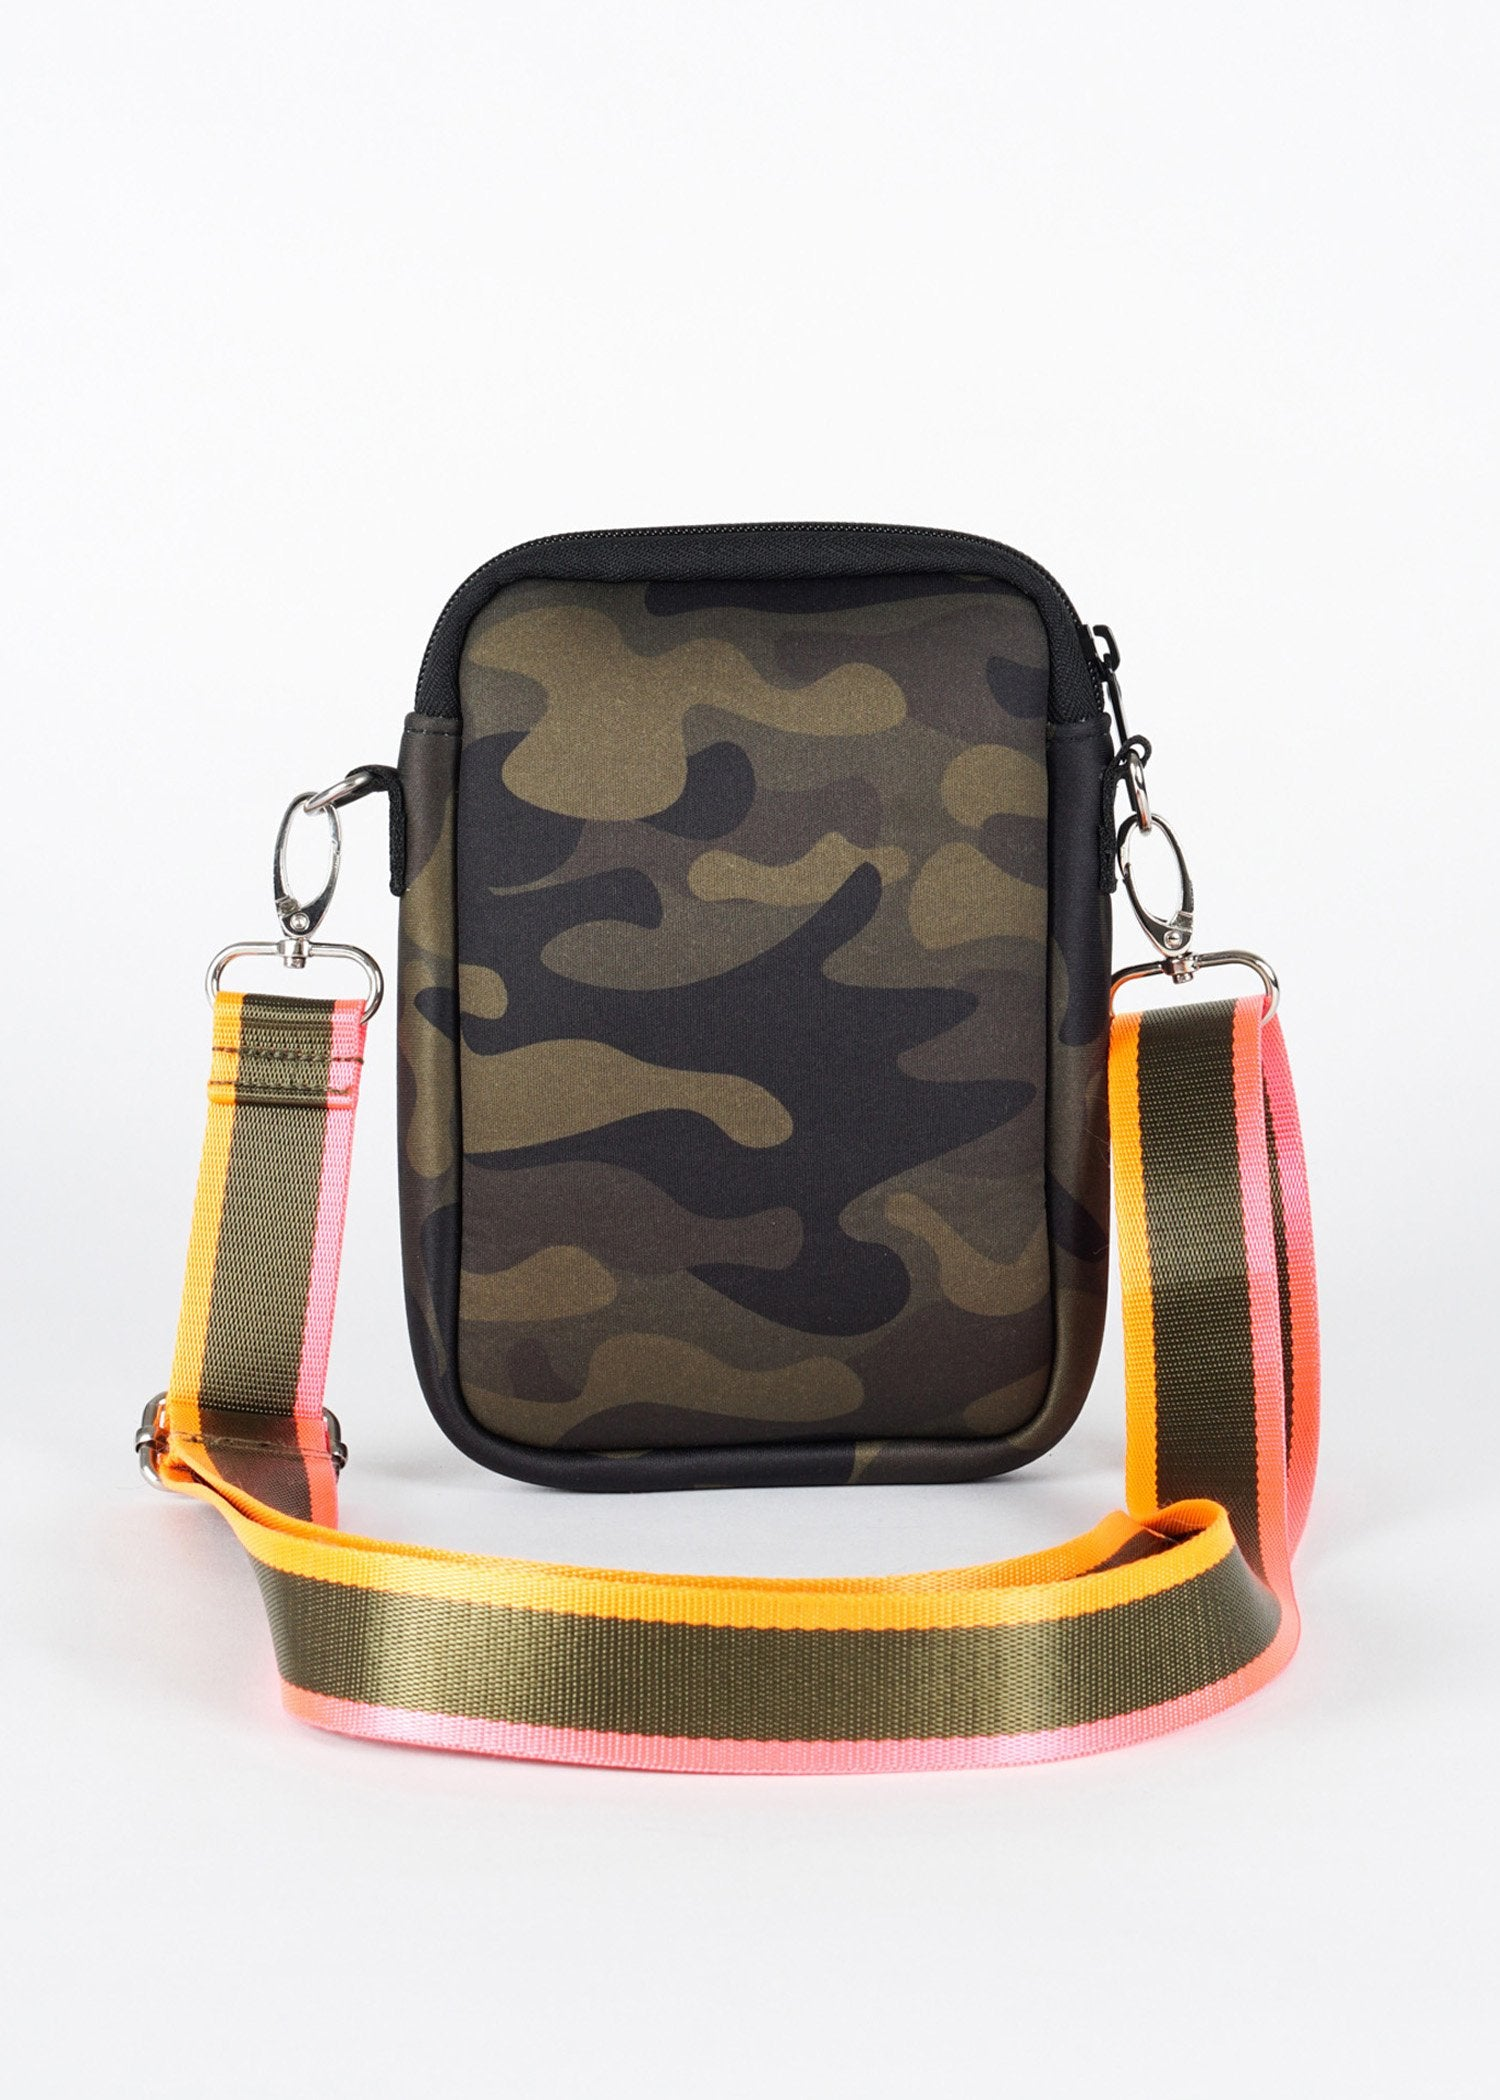 Casey Cell Phone Crossbody Bag | Green Camo w/ Pink & Orange Stripe - Susie O's Handbags